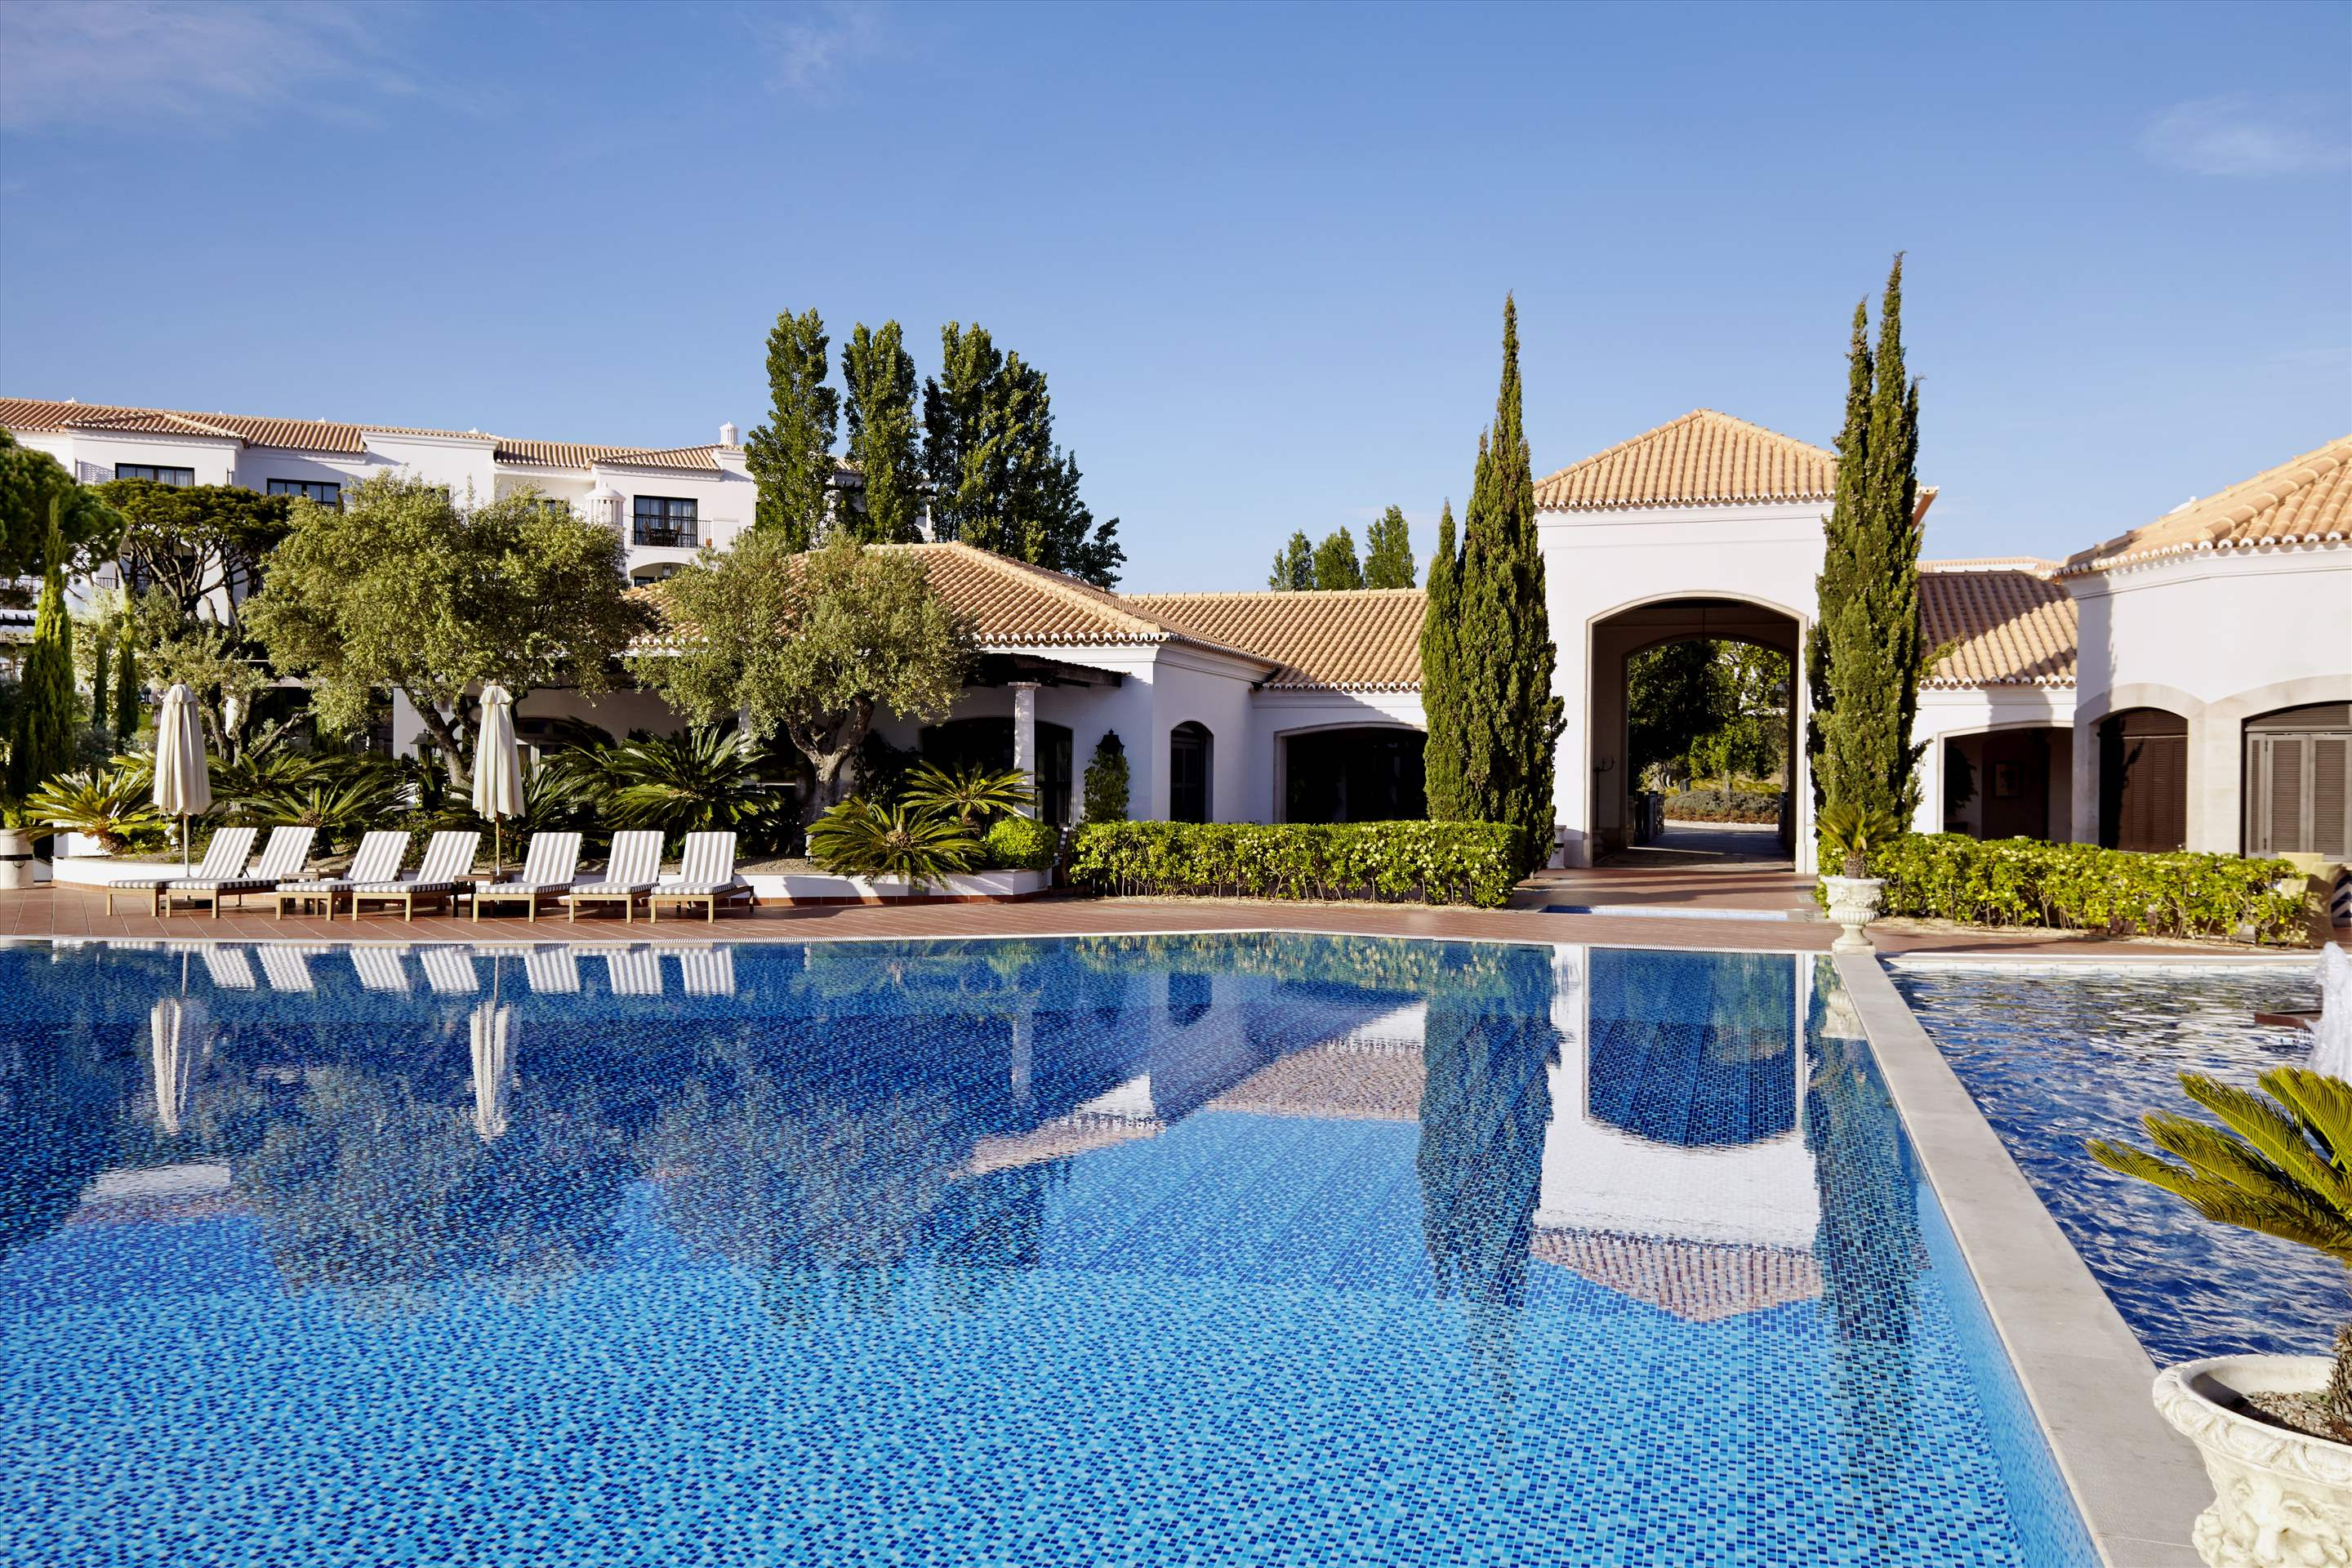 Pine Cliffs Residence, Penthouse 2 bed luxury suite, 2 bedroom apartment in Pine Cliffs Resort, Algarve